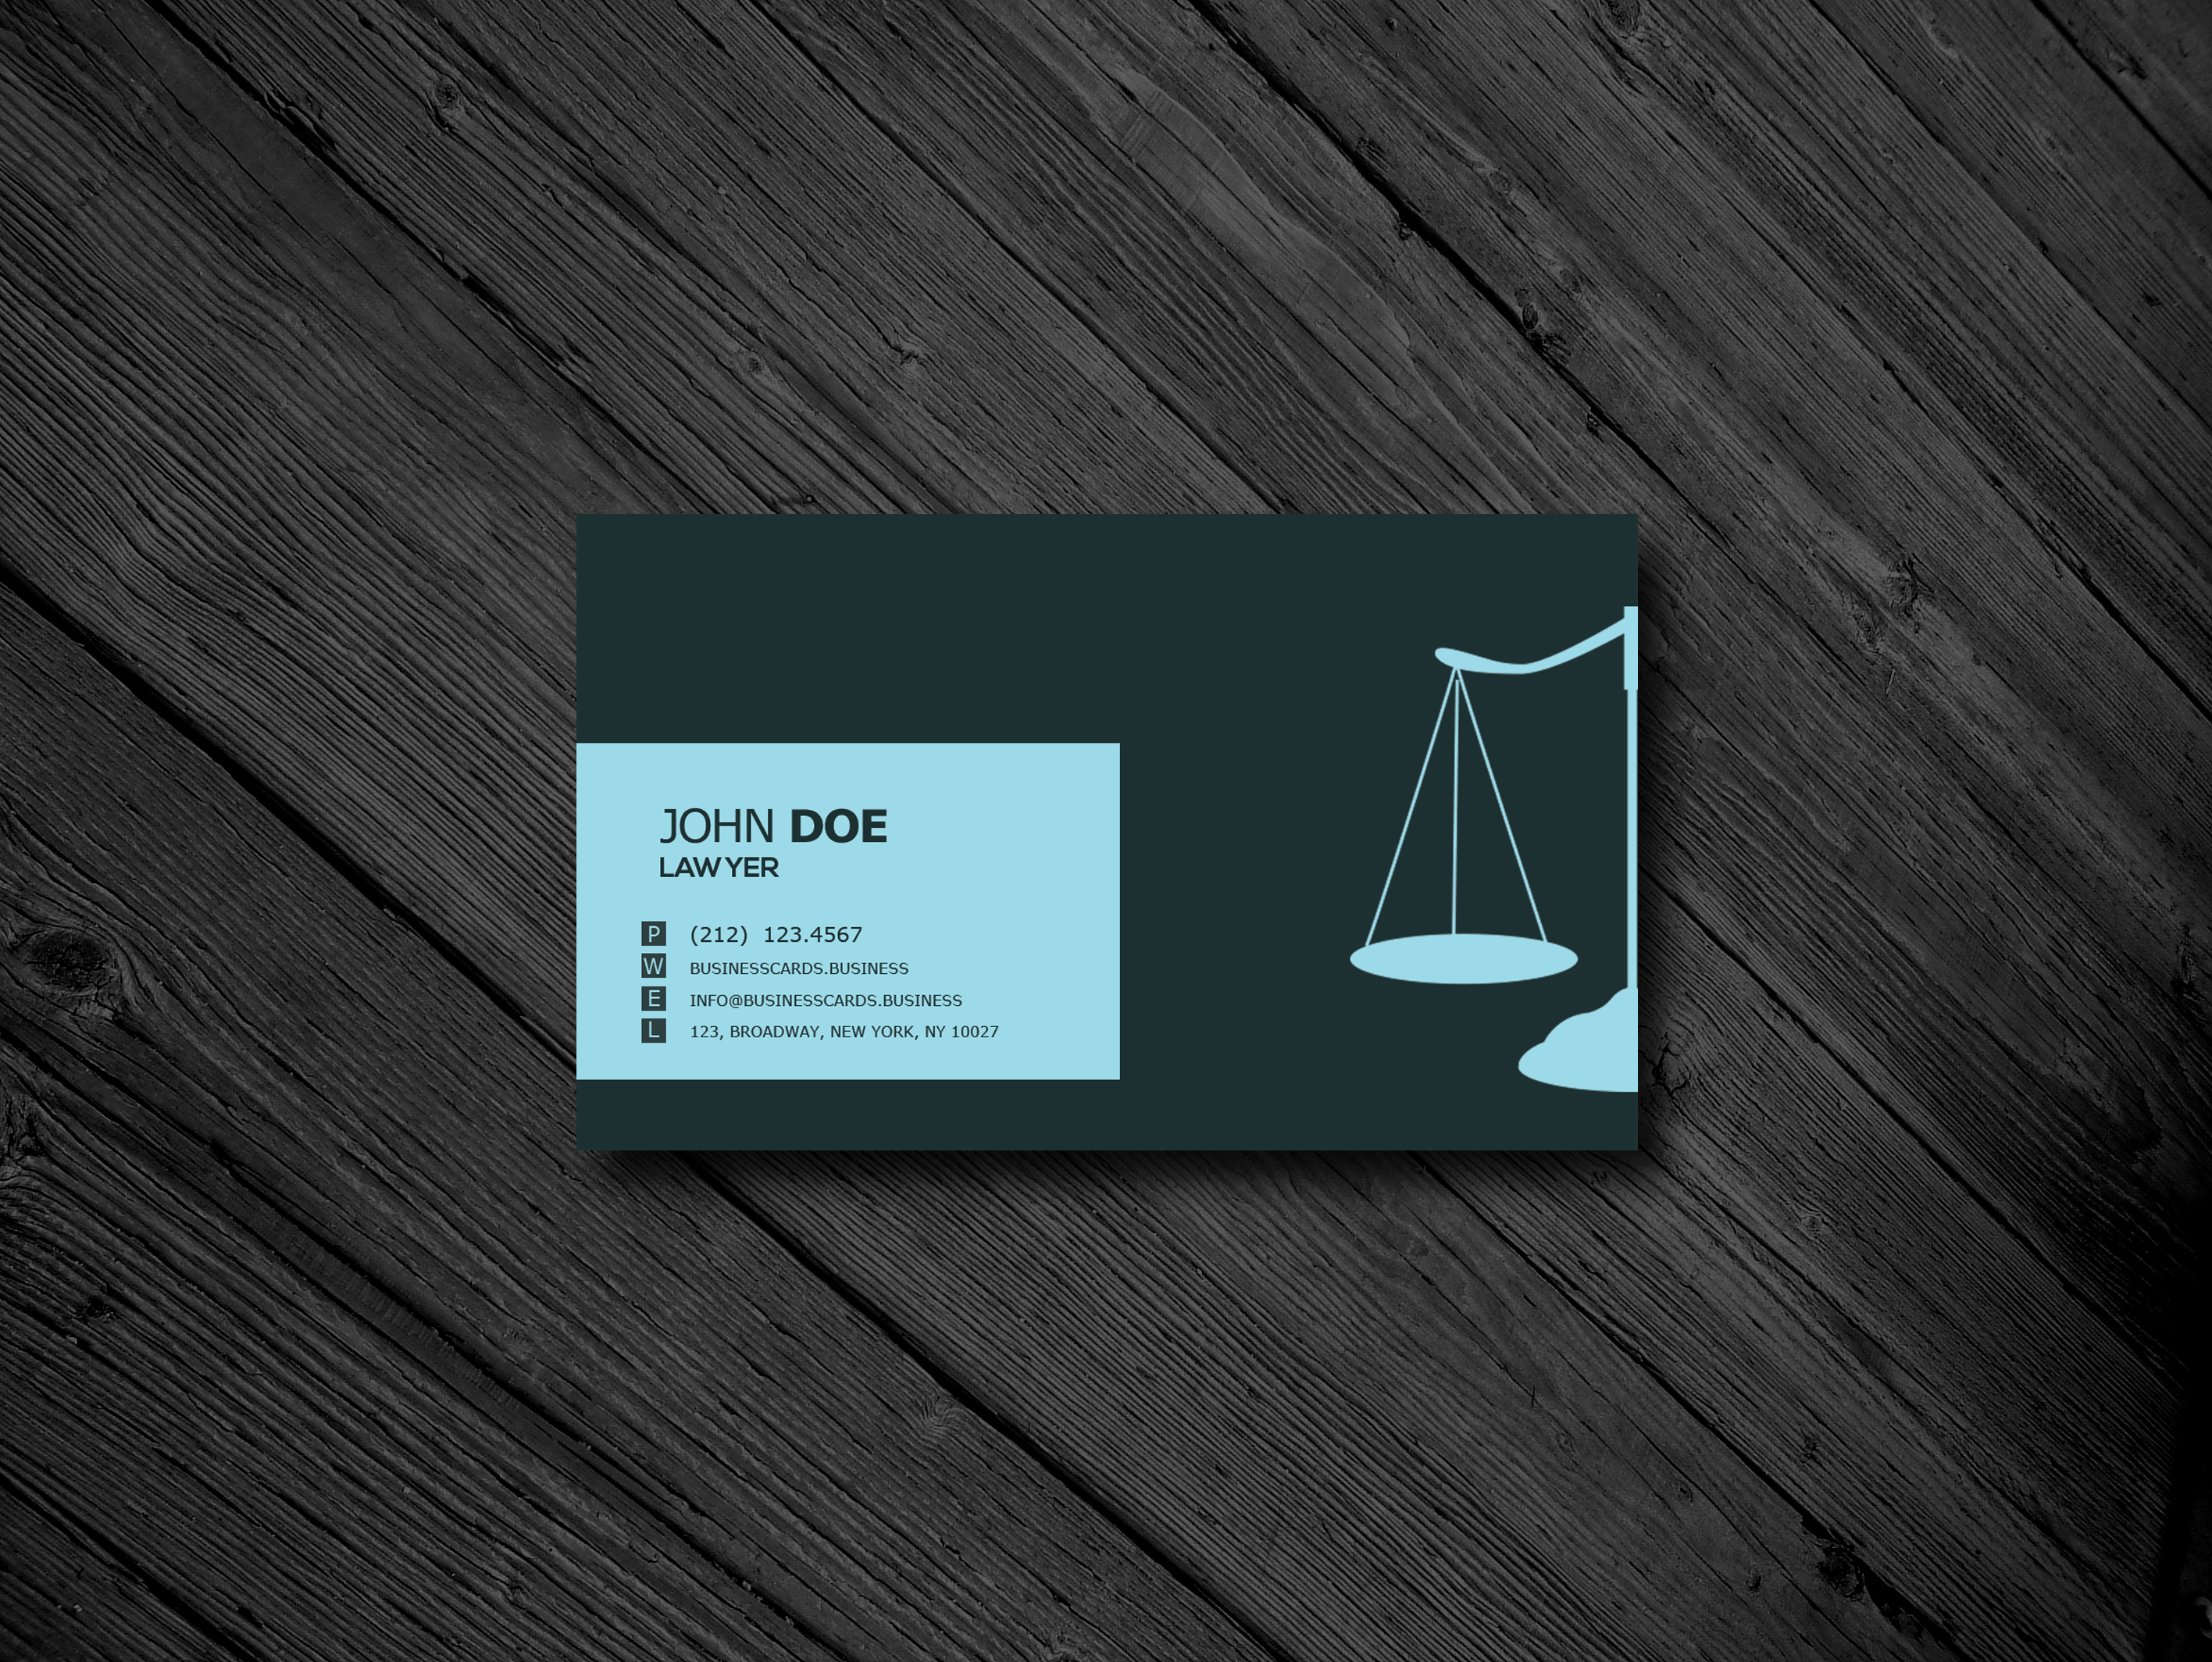 Free Business Card Templates Business Cards Templates - Lawyer business card templates